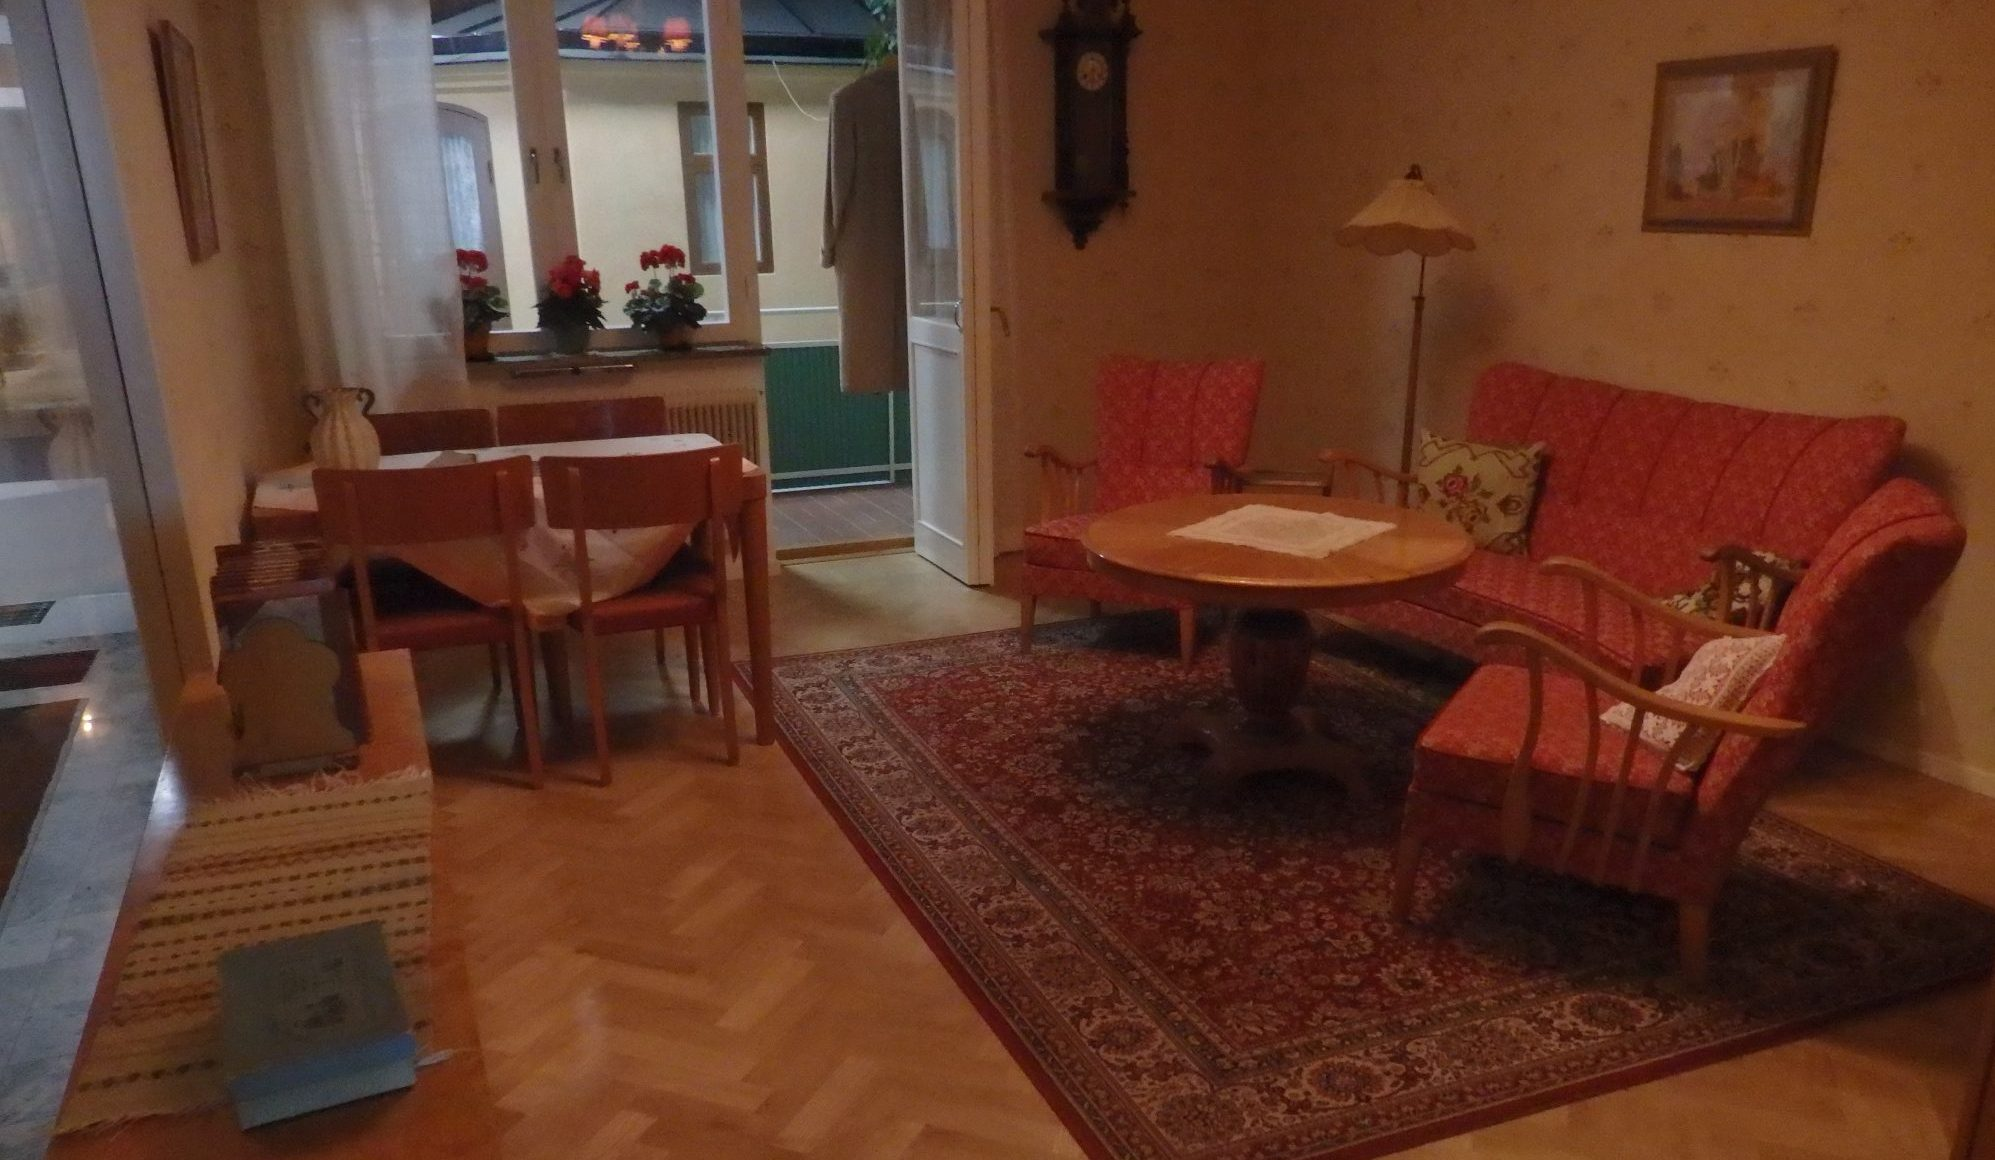 The living room of the recreated Folkhammet apartment in the Nordic Museum, Stockholm, Sweden